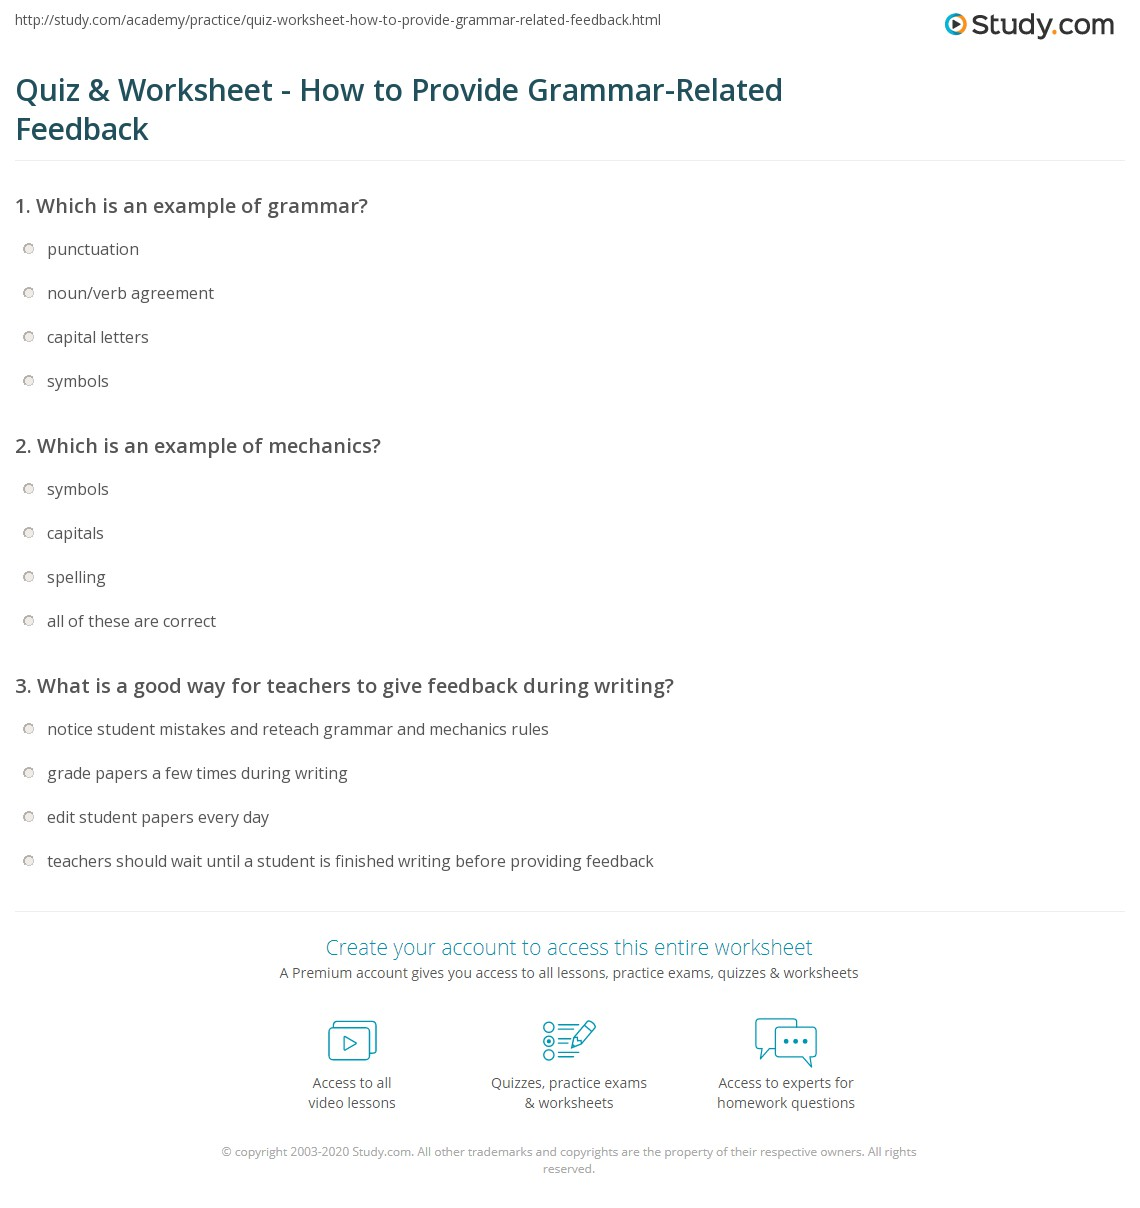 Quiz Worksheet How To Provide Grammar Related Feedback Study